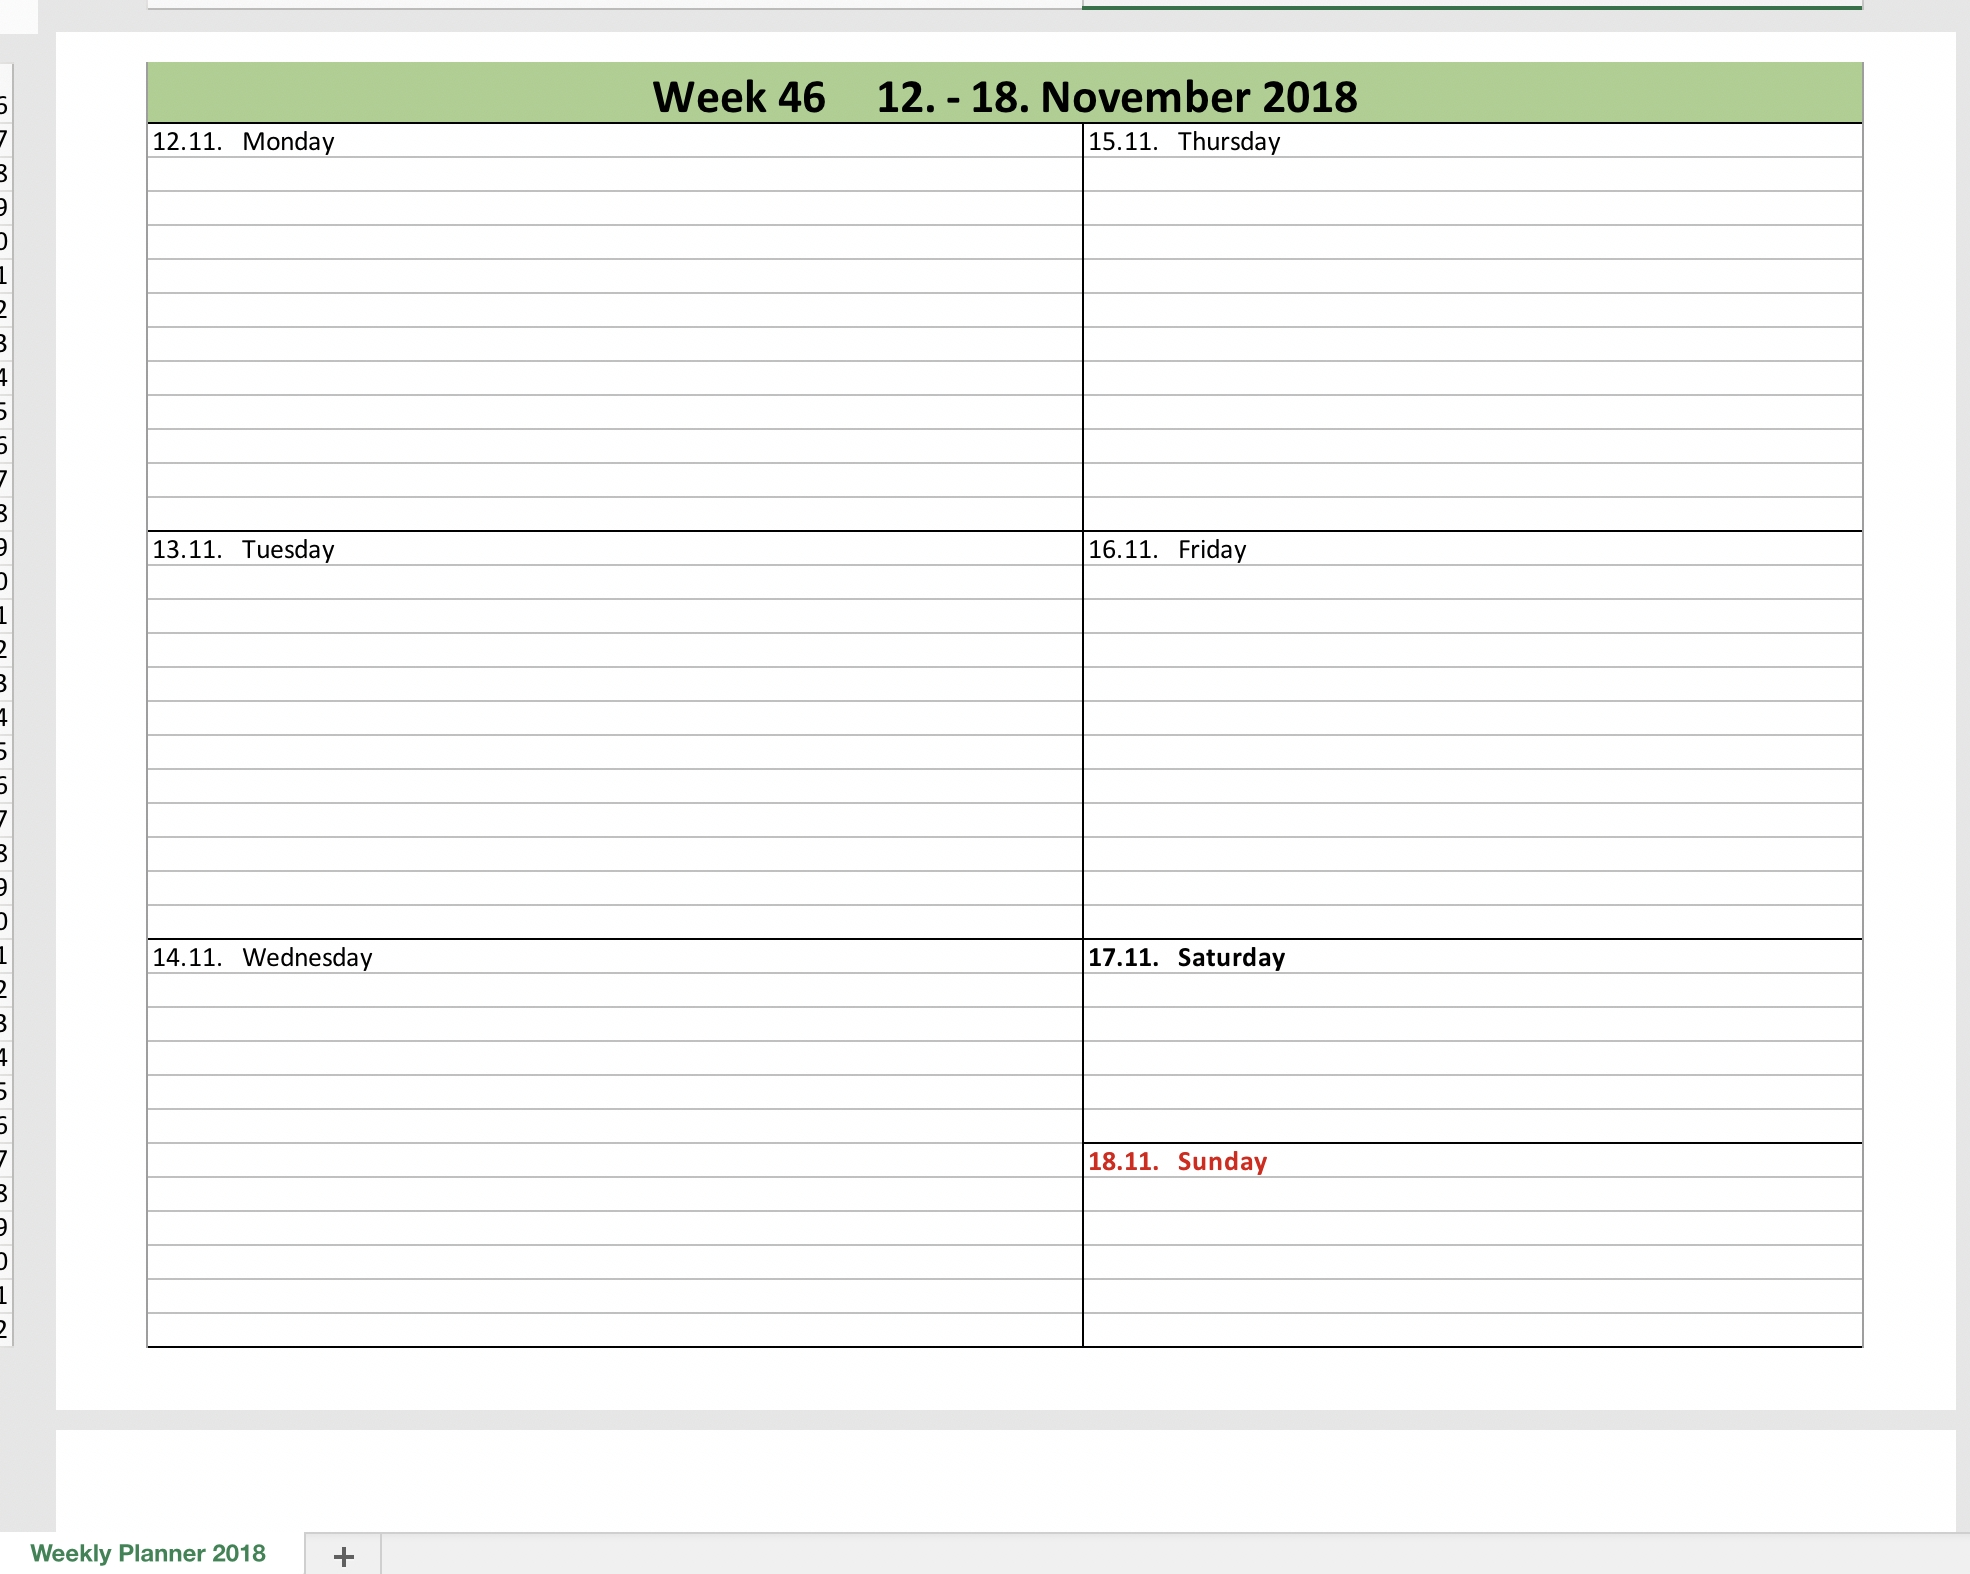 Weekly Calendar 2018 With Excel | Excel Templates For Every Purpose